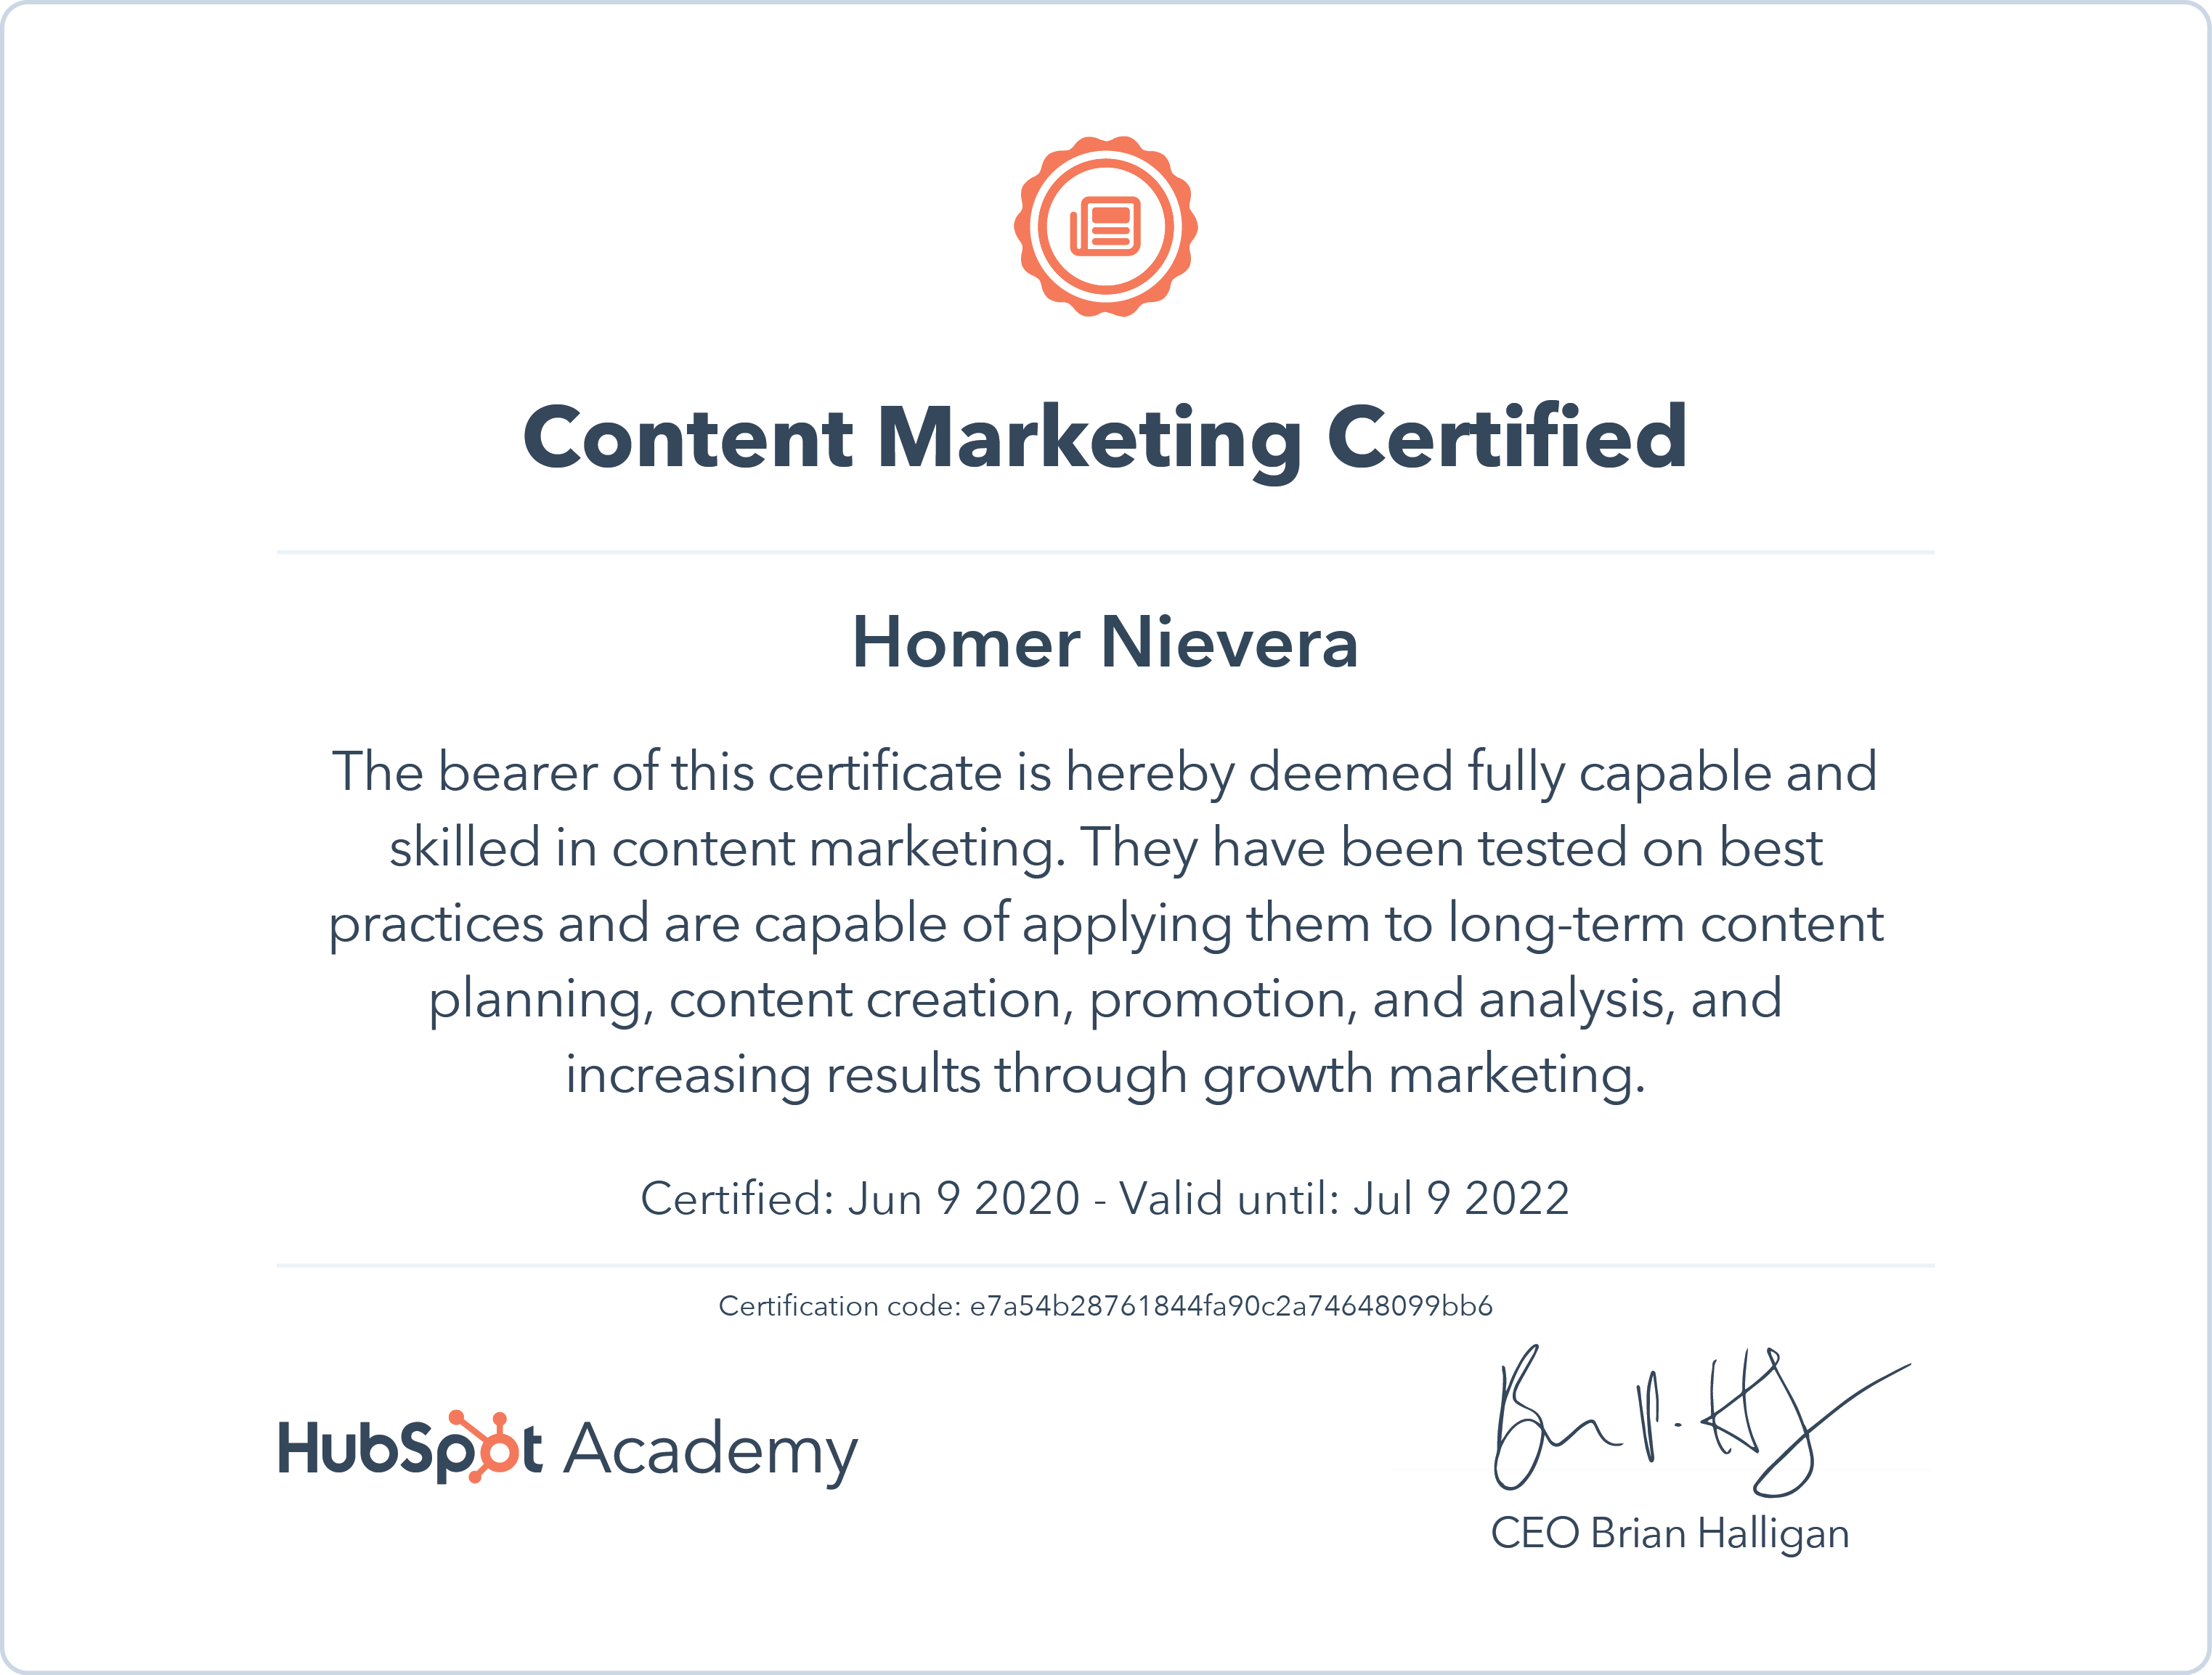 HUBSPOT CONTENT MARKETING CERTIFICATE - e7a54b28761844fa90c2a74648099bb6-1591677383929